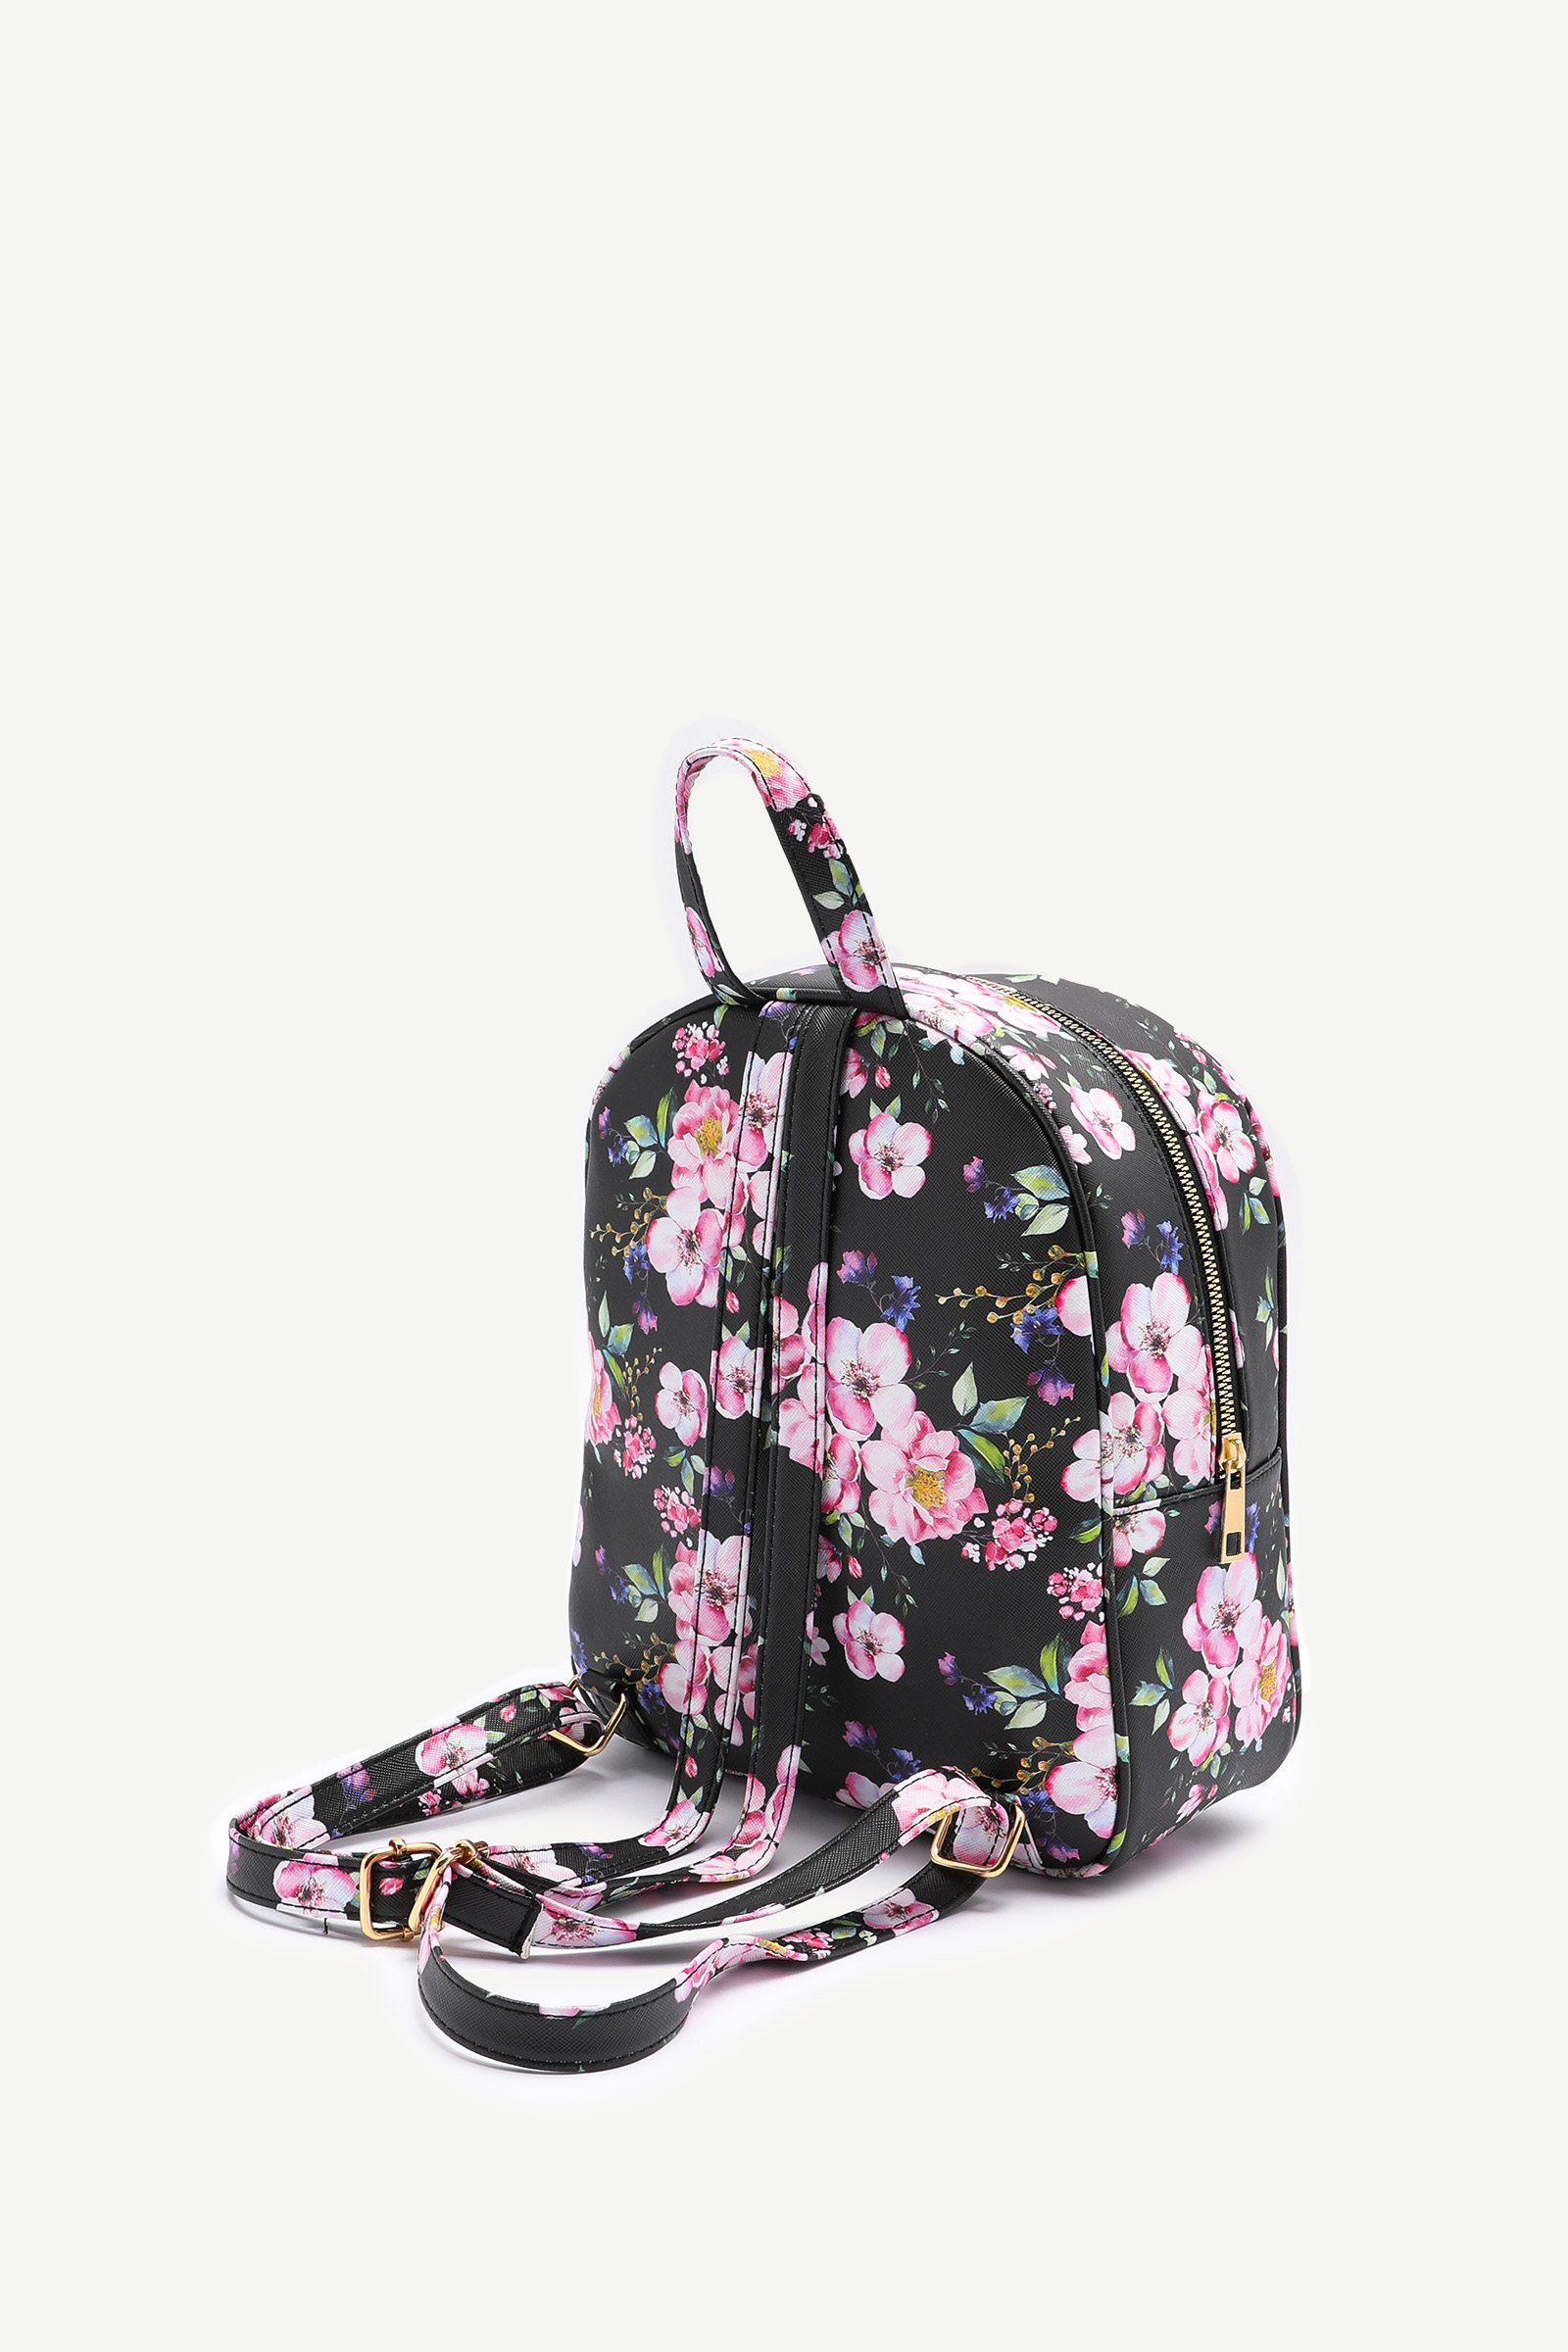 Basic Faux Leather Floral Backpack